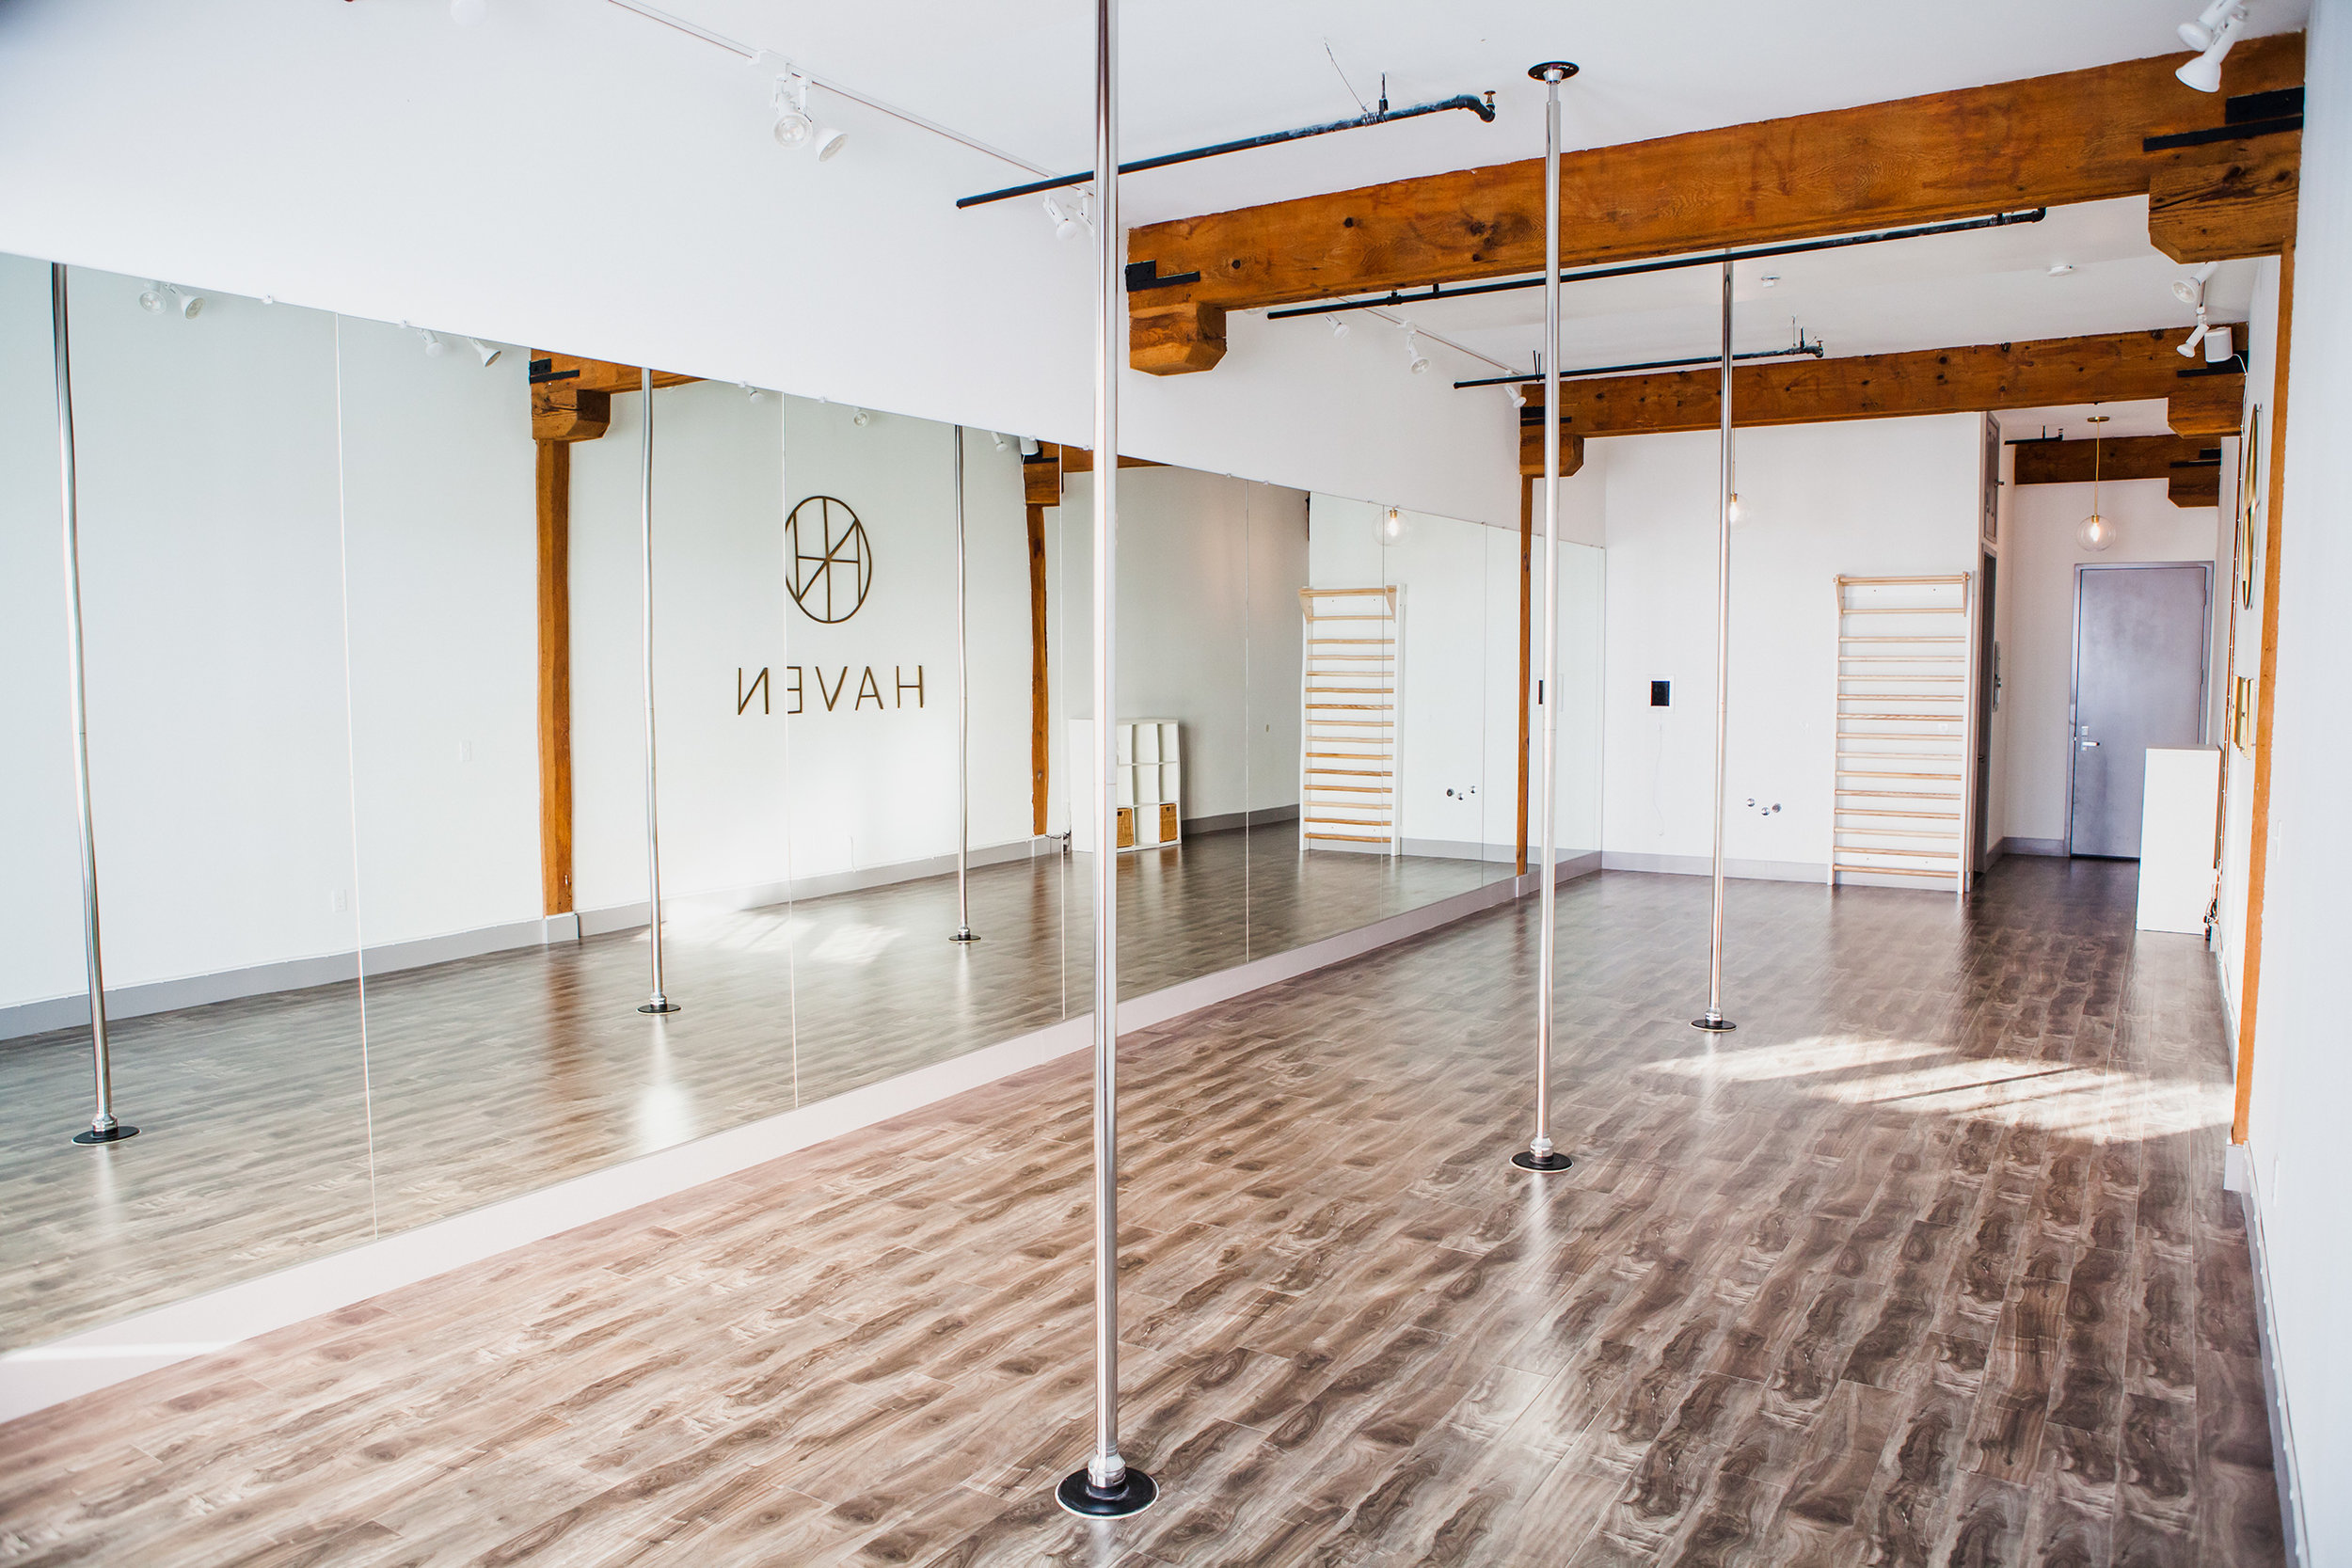 Haven rental for pole, dance, fitness and photography